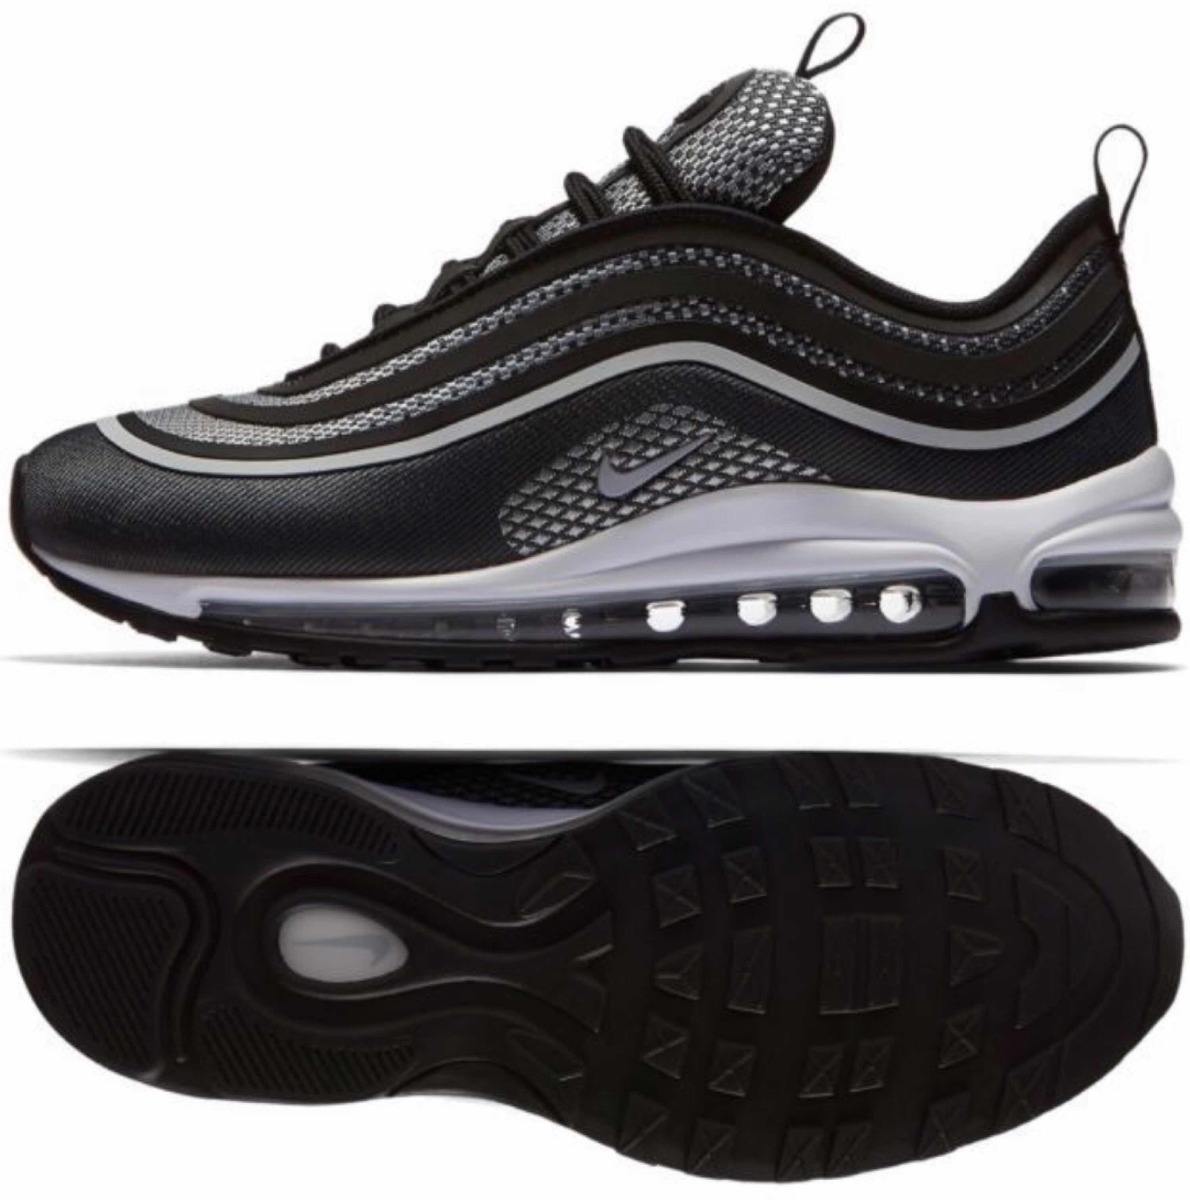 finest selection d88d1 47115 ... wholesale nike air max 97 ultra black reflective. cargando zoom. 113c4  a22aa